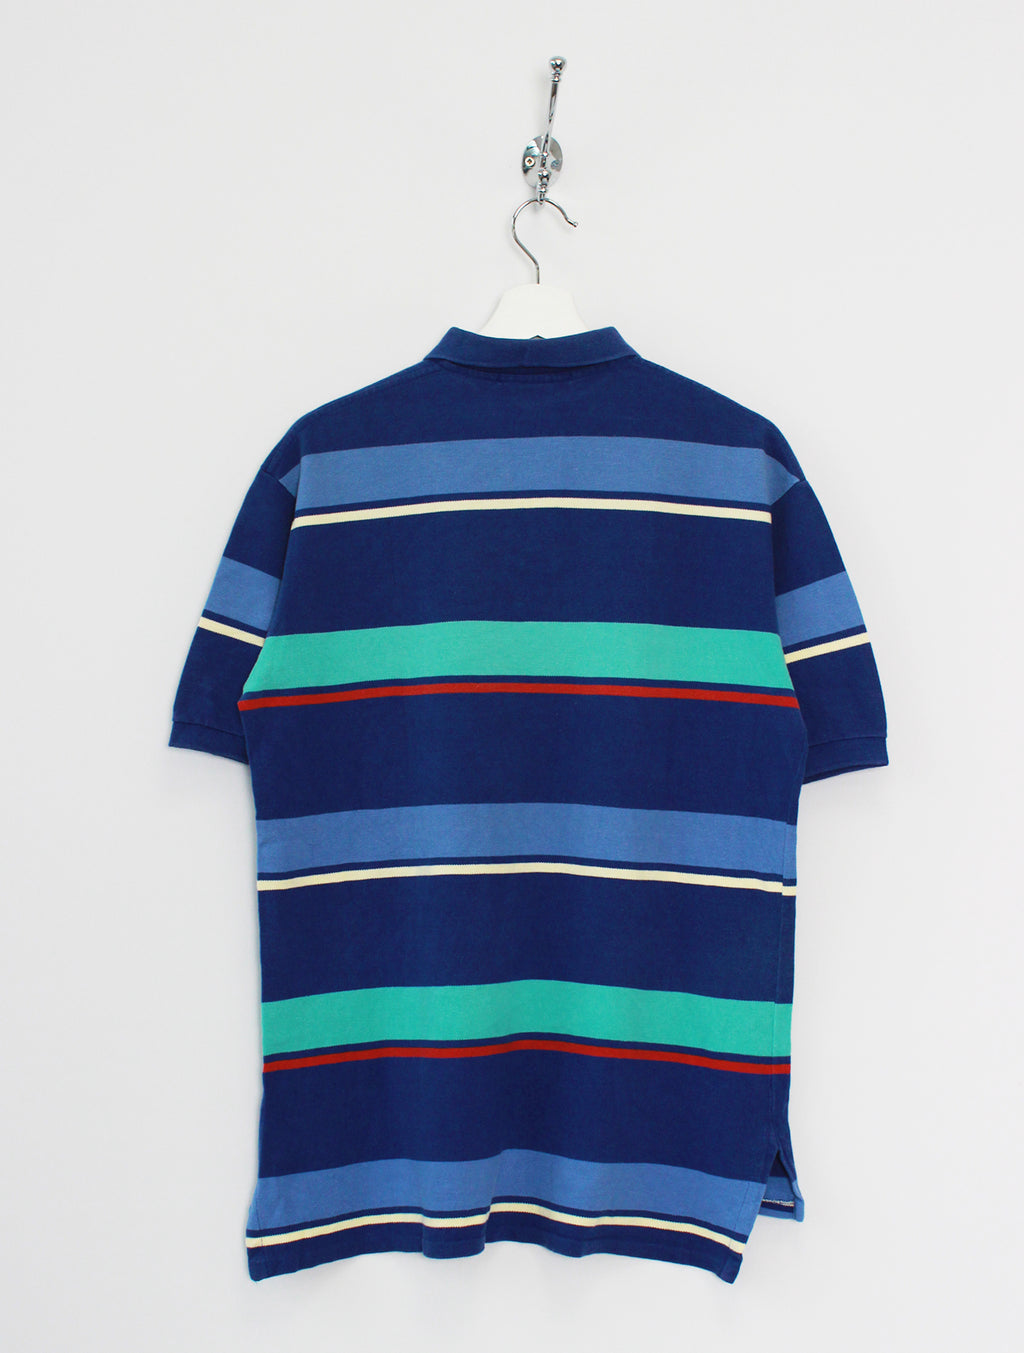 Ralph Lauren Polo Shirt (M)